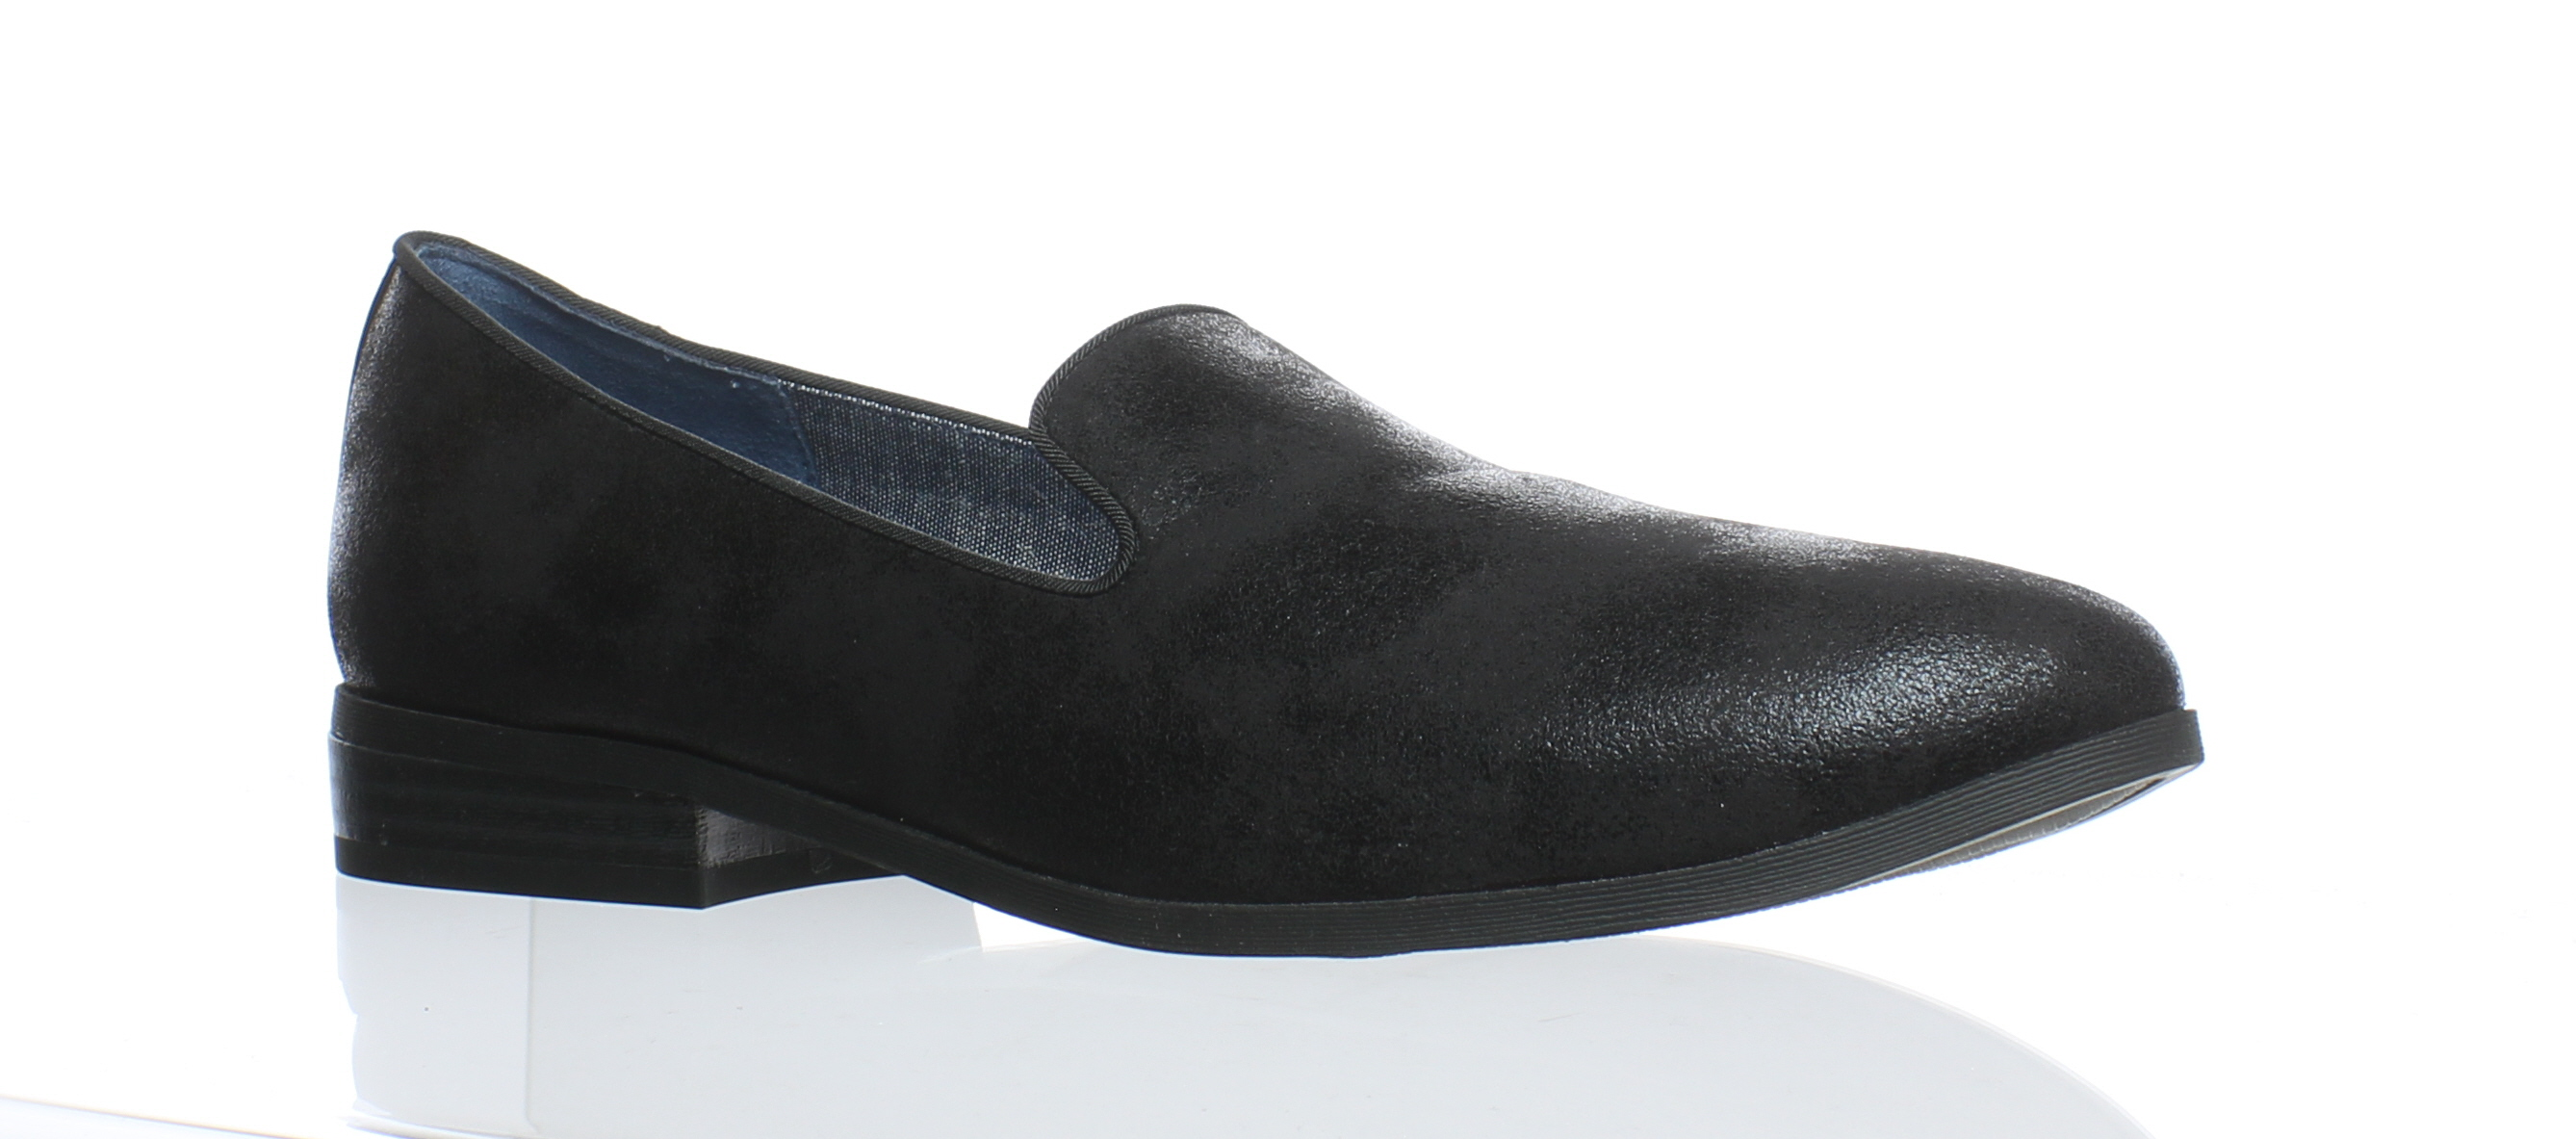 8a61a828246 Dr. Scholl s Womens Emperor Black Splatter Loafers Size 8 (180265 ...